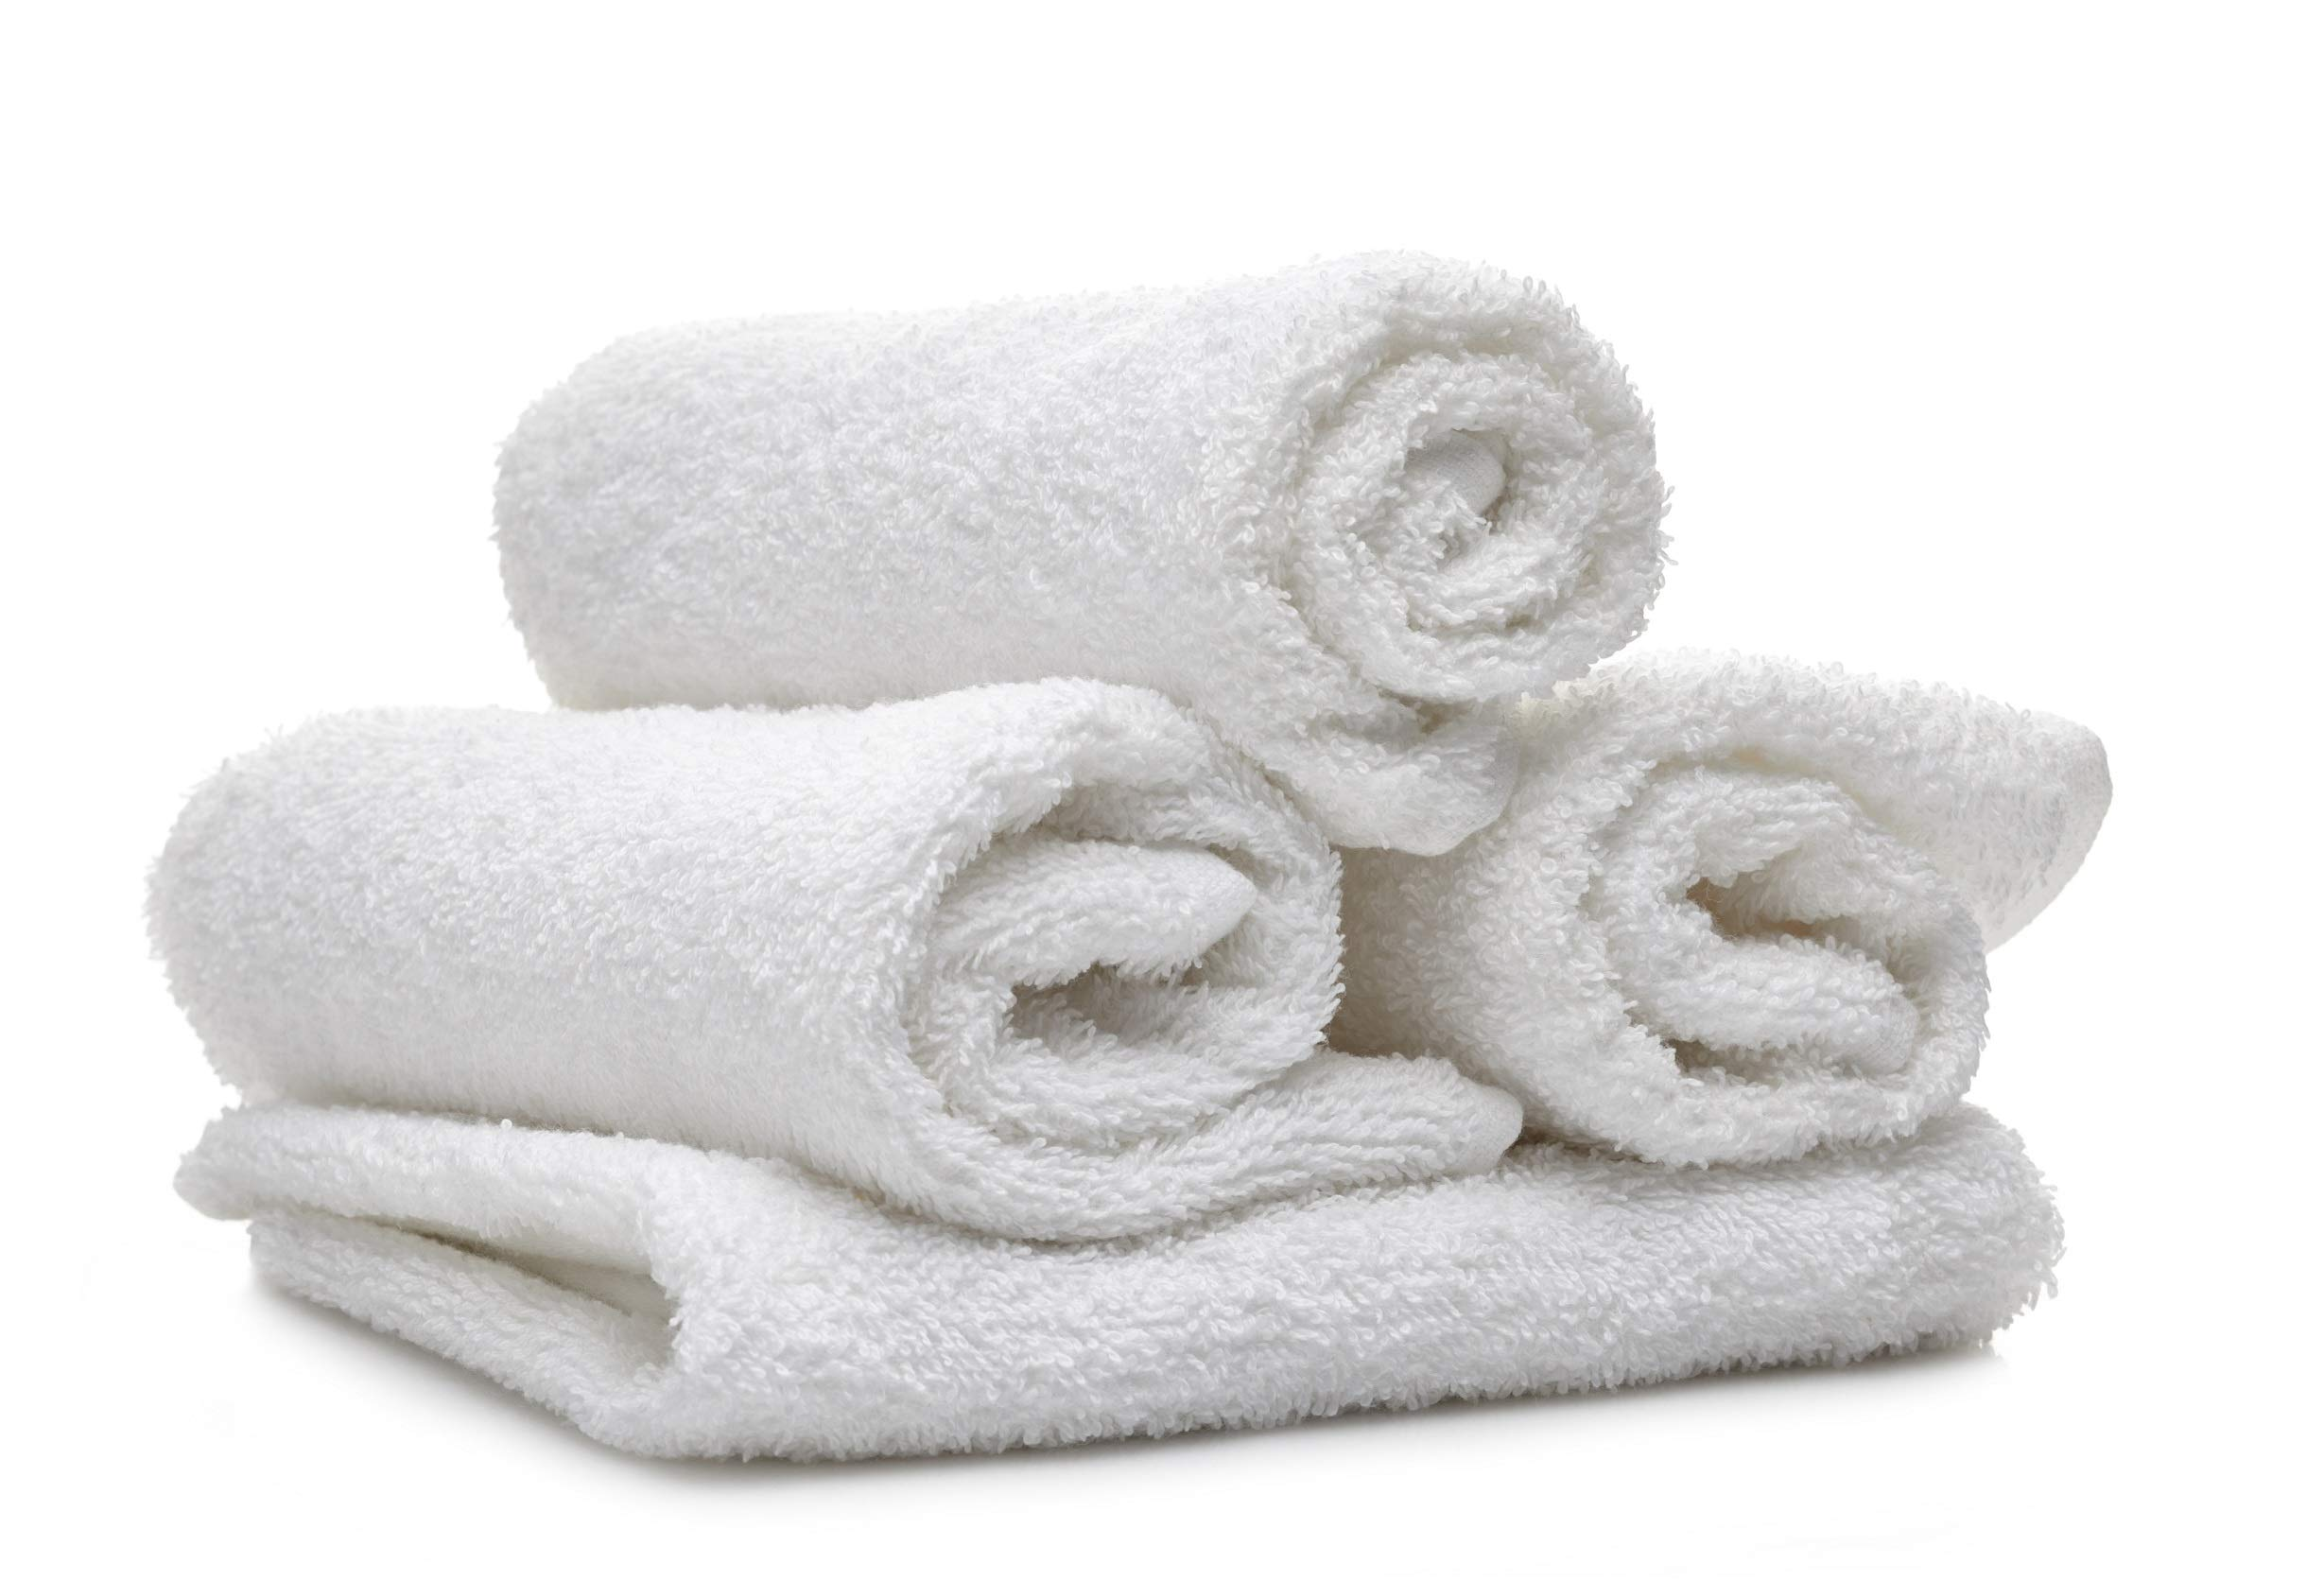 Cotton Salon Towels (Pack of 12) - 100% Soft Ring Spun Cotton - 16X27 Inches White - Face Gym Hand Towel by Atlas